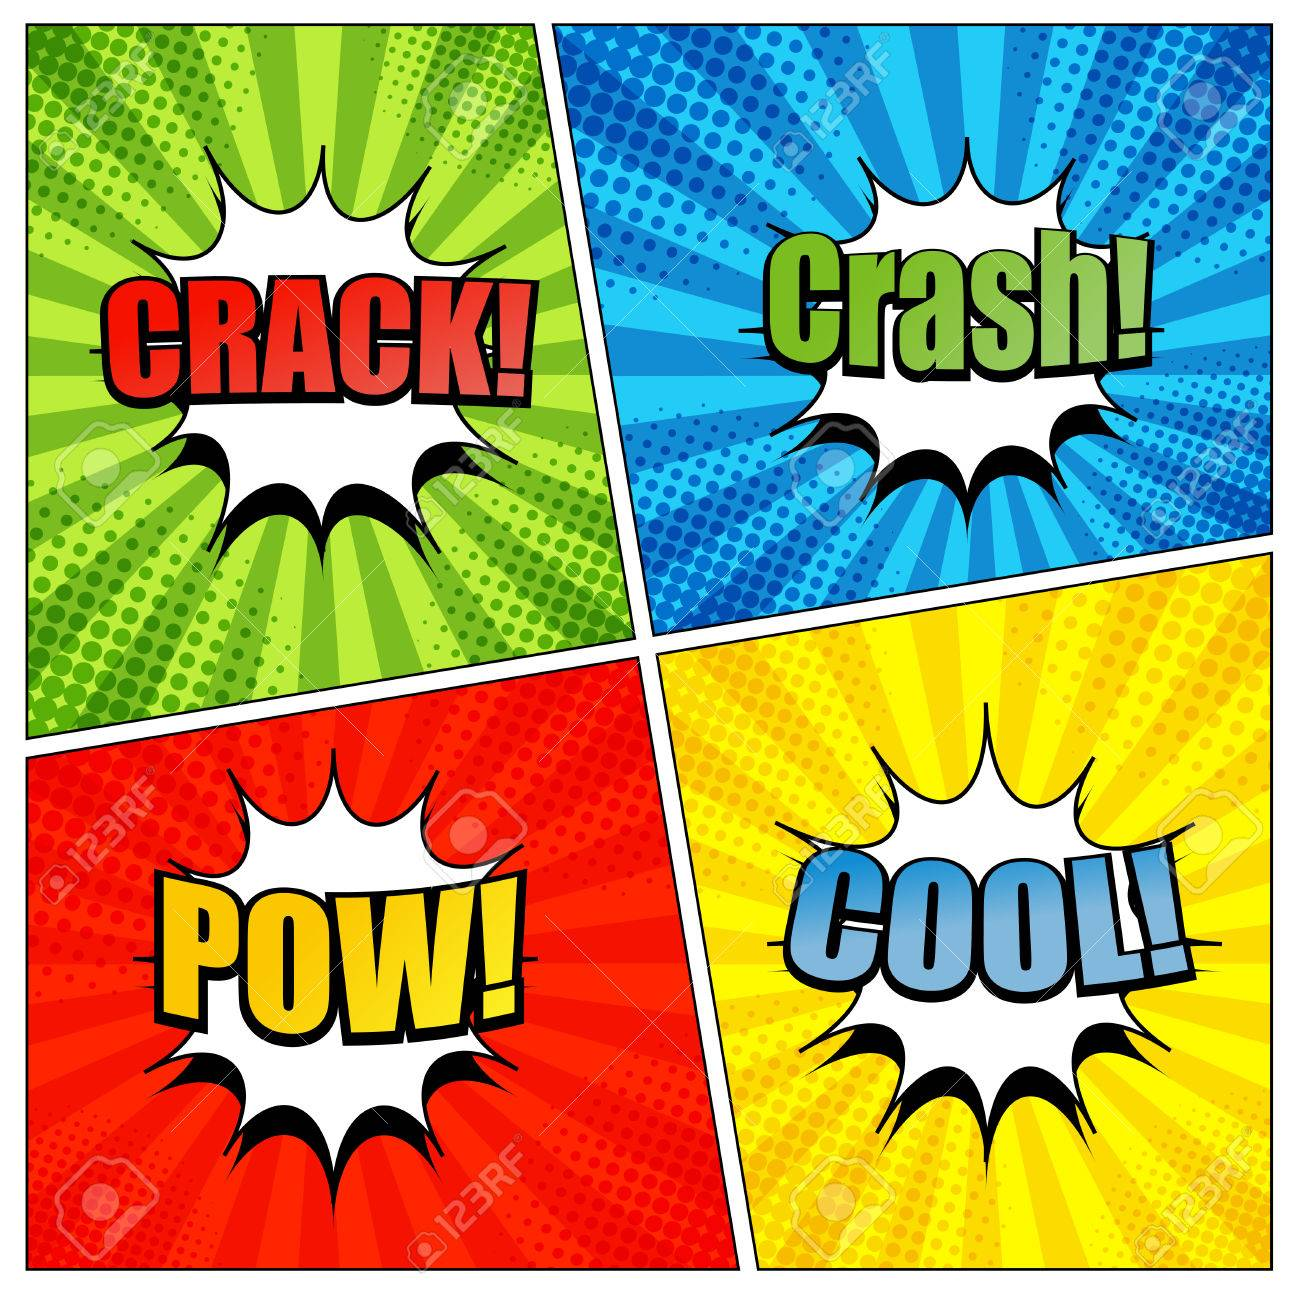 Comic book page template with colorful crack crash pow and cool